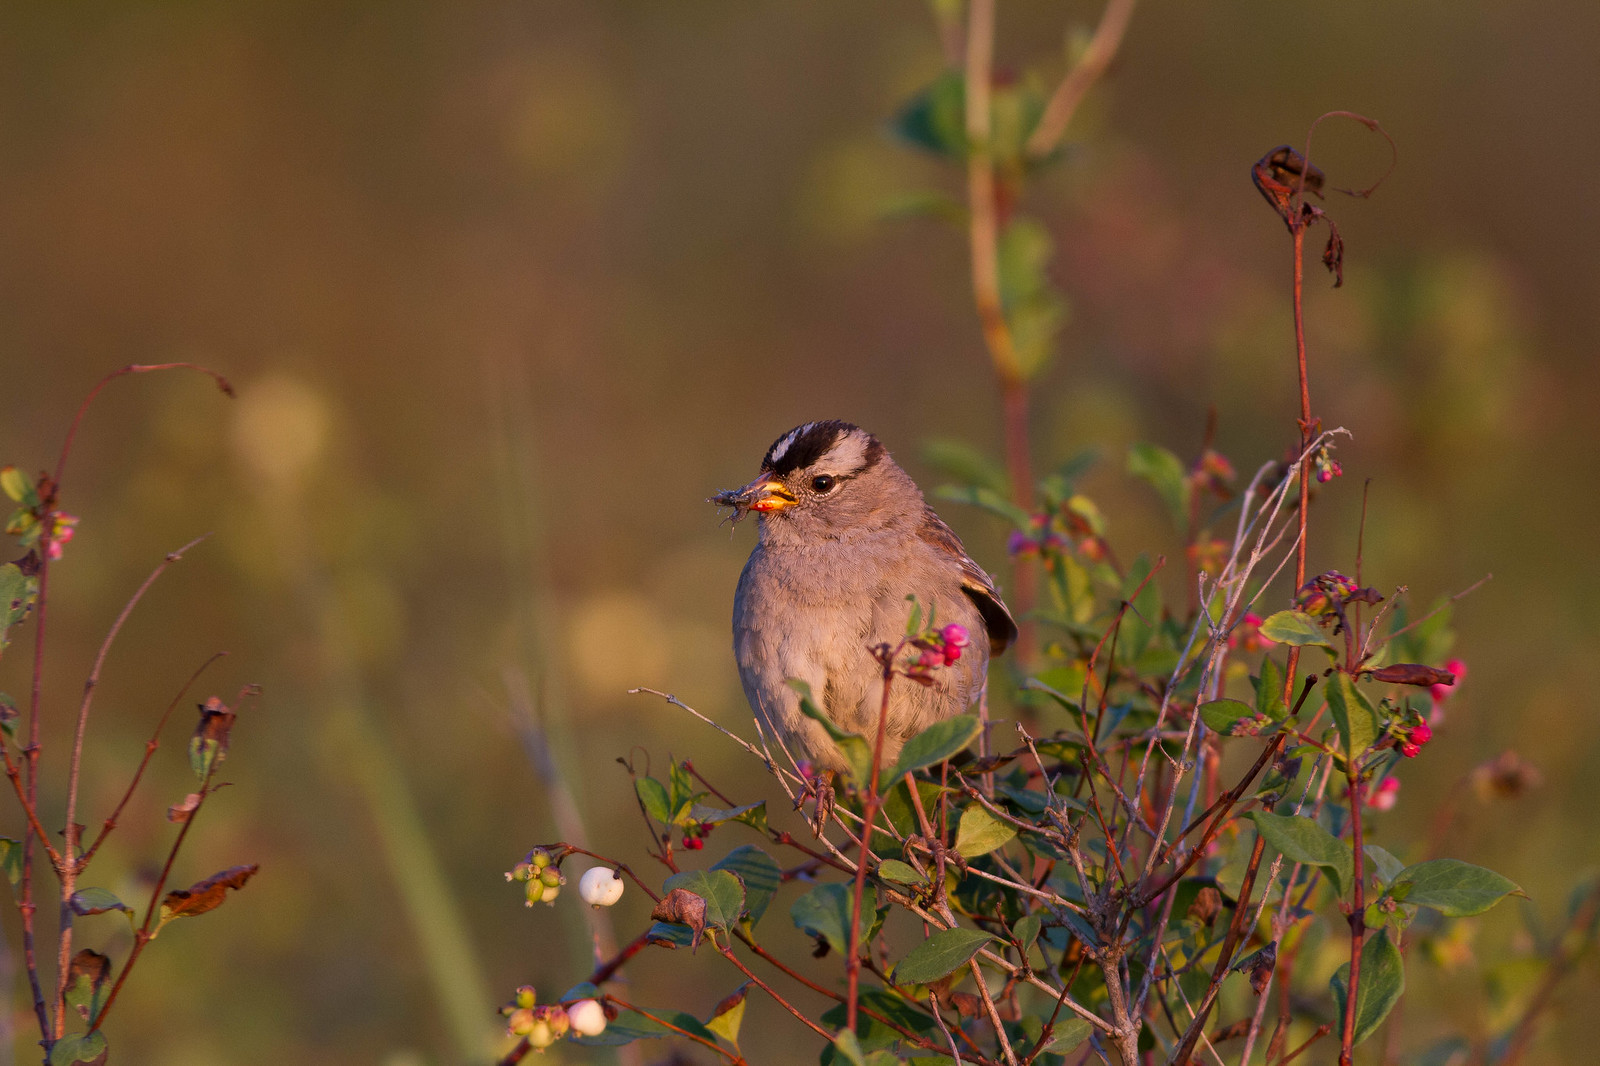 White-crowned Sparrow (Pugatencis ssp)